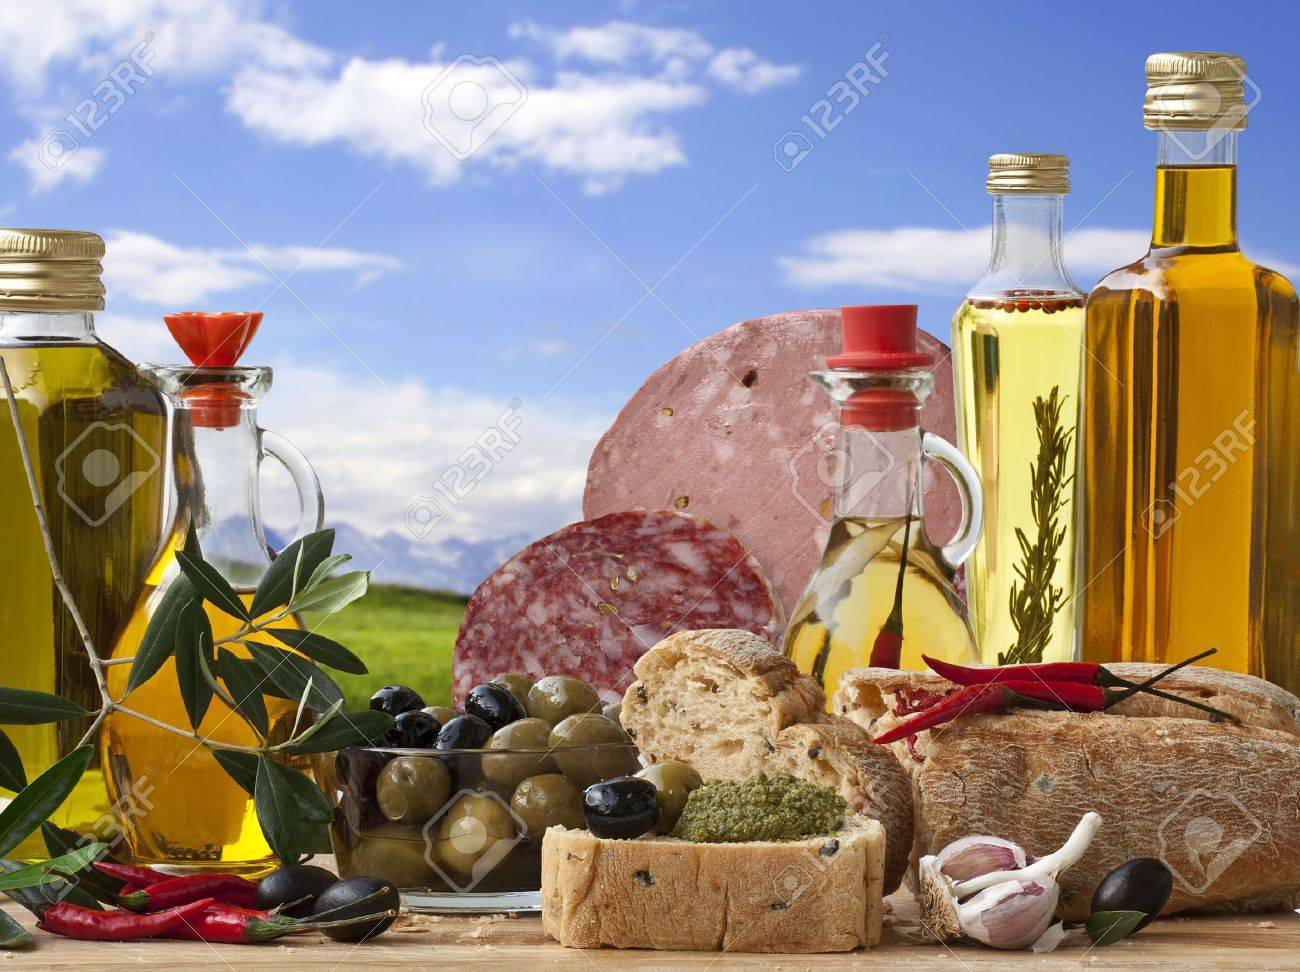 Decorative Italian deli with 5 different Olive Oil, Italian Bread, Italian Baloney and Salami, Olive and ingredient on a Landscape Background. Stock Photo - 7034998